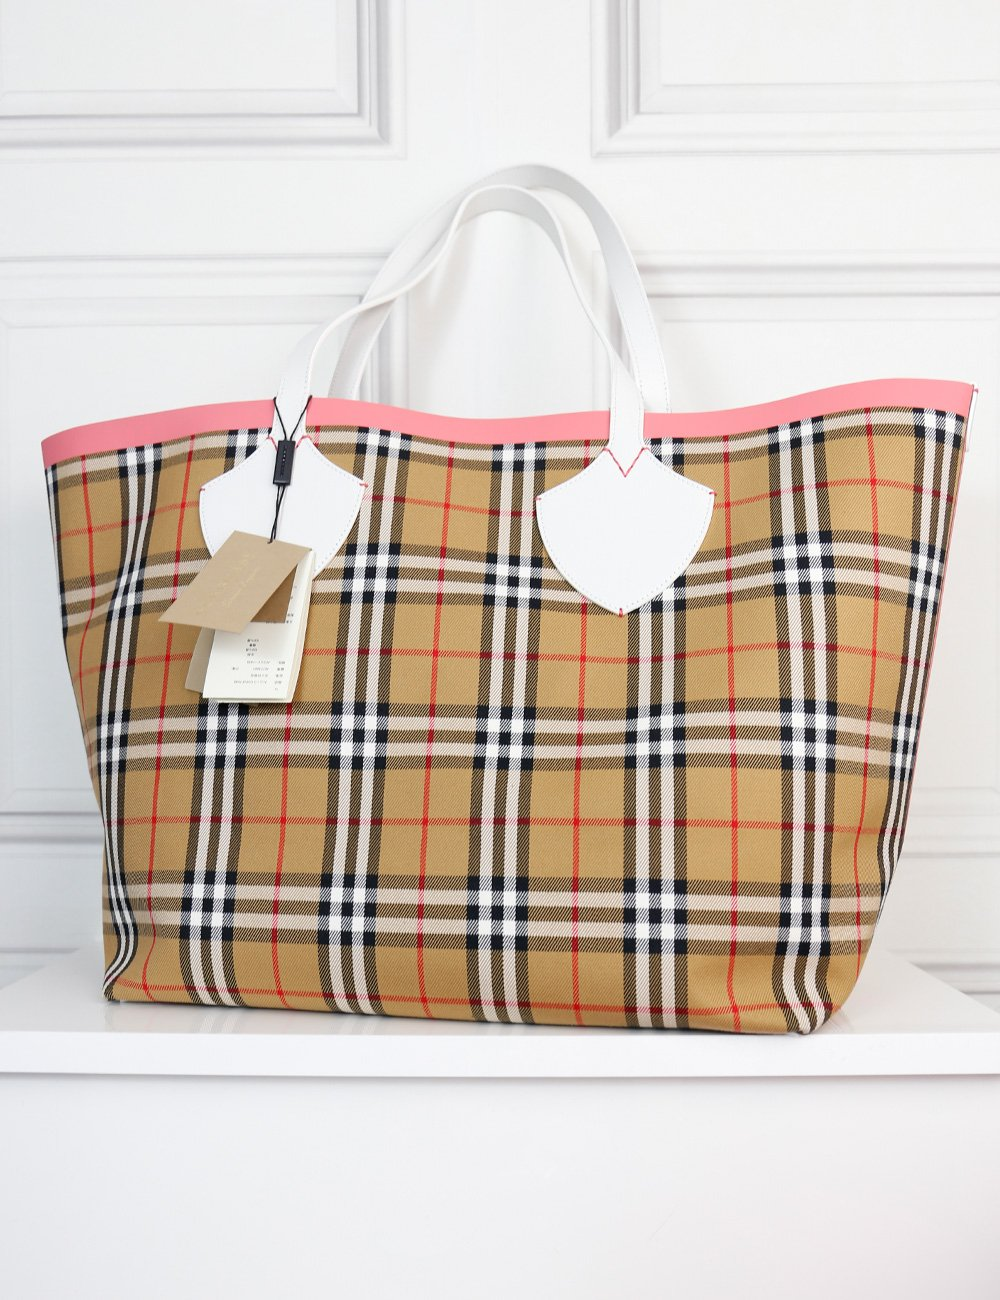 BURBERRY BAGS One size / Multicolour BURBERRY The Giant  Reversible Tote bag in vintage check